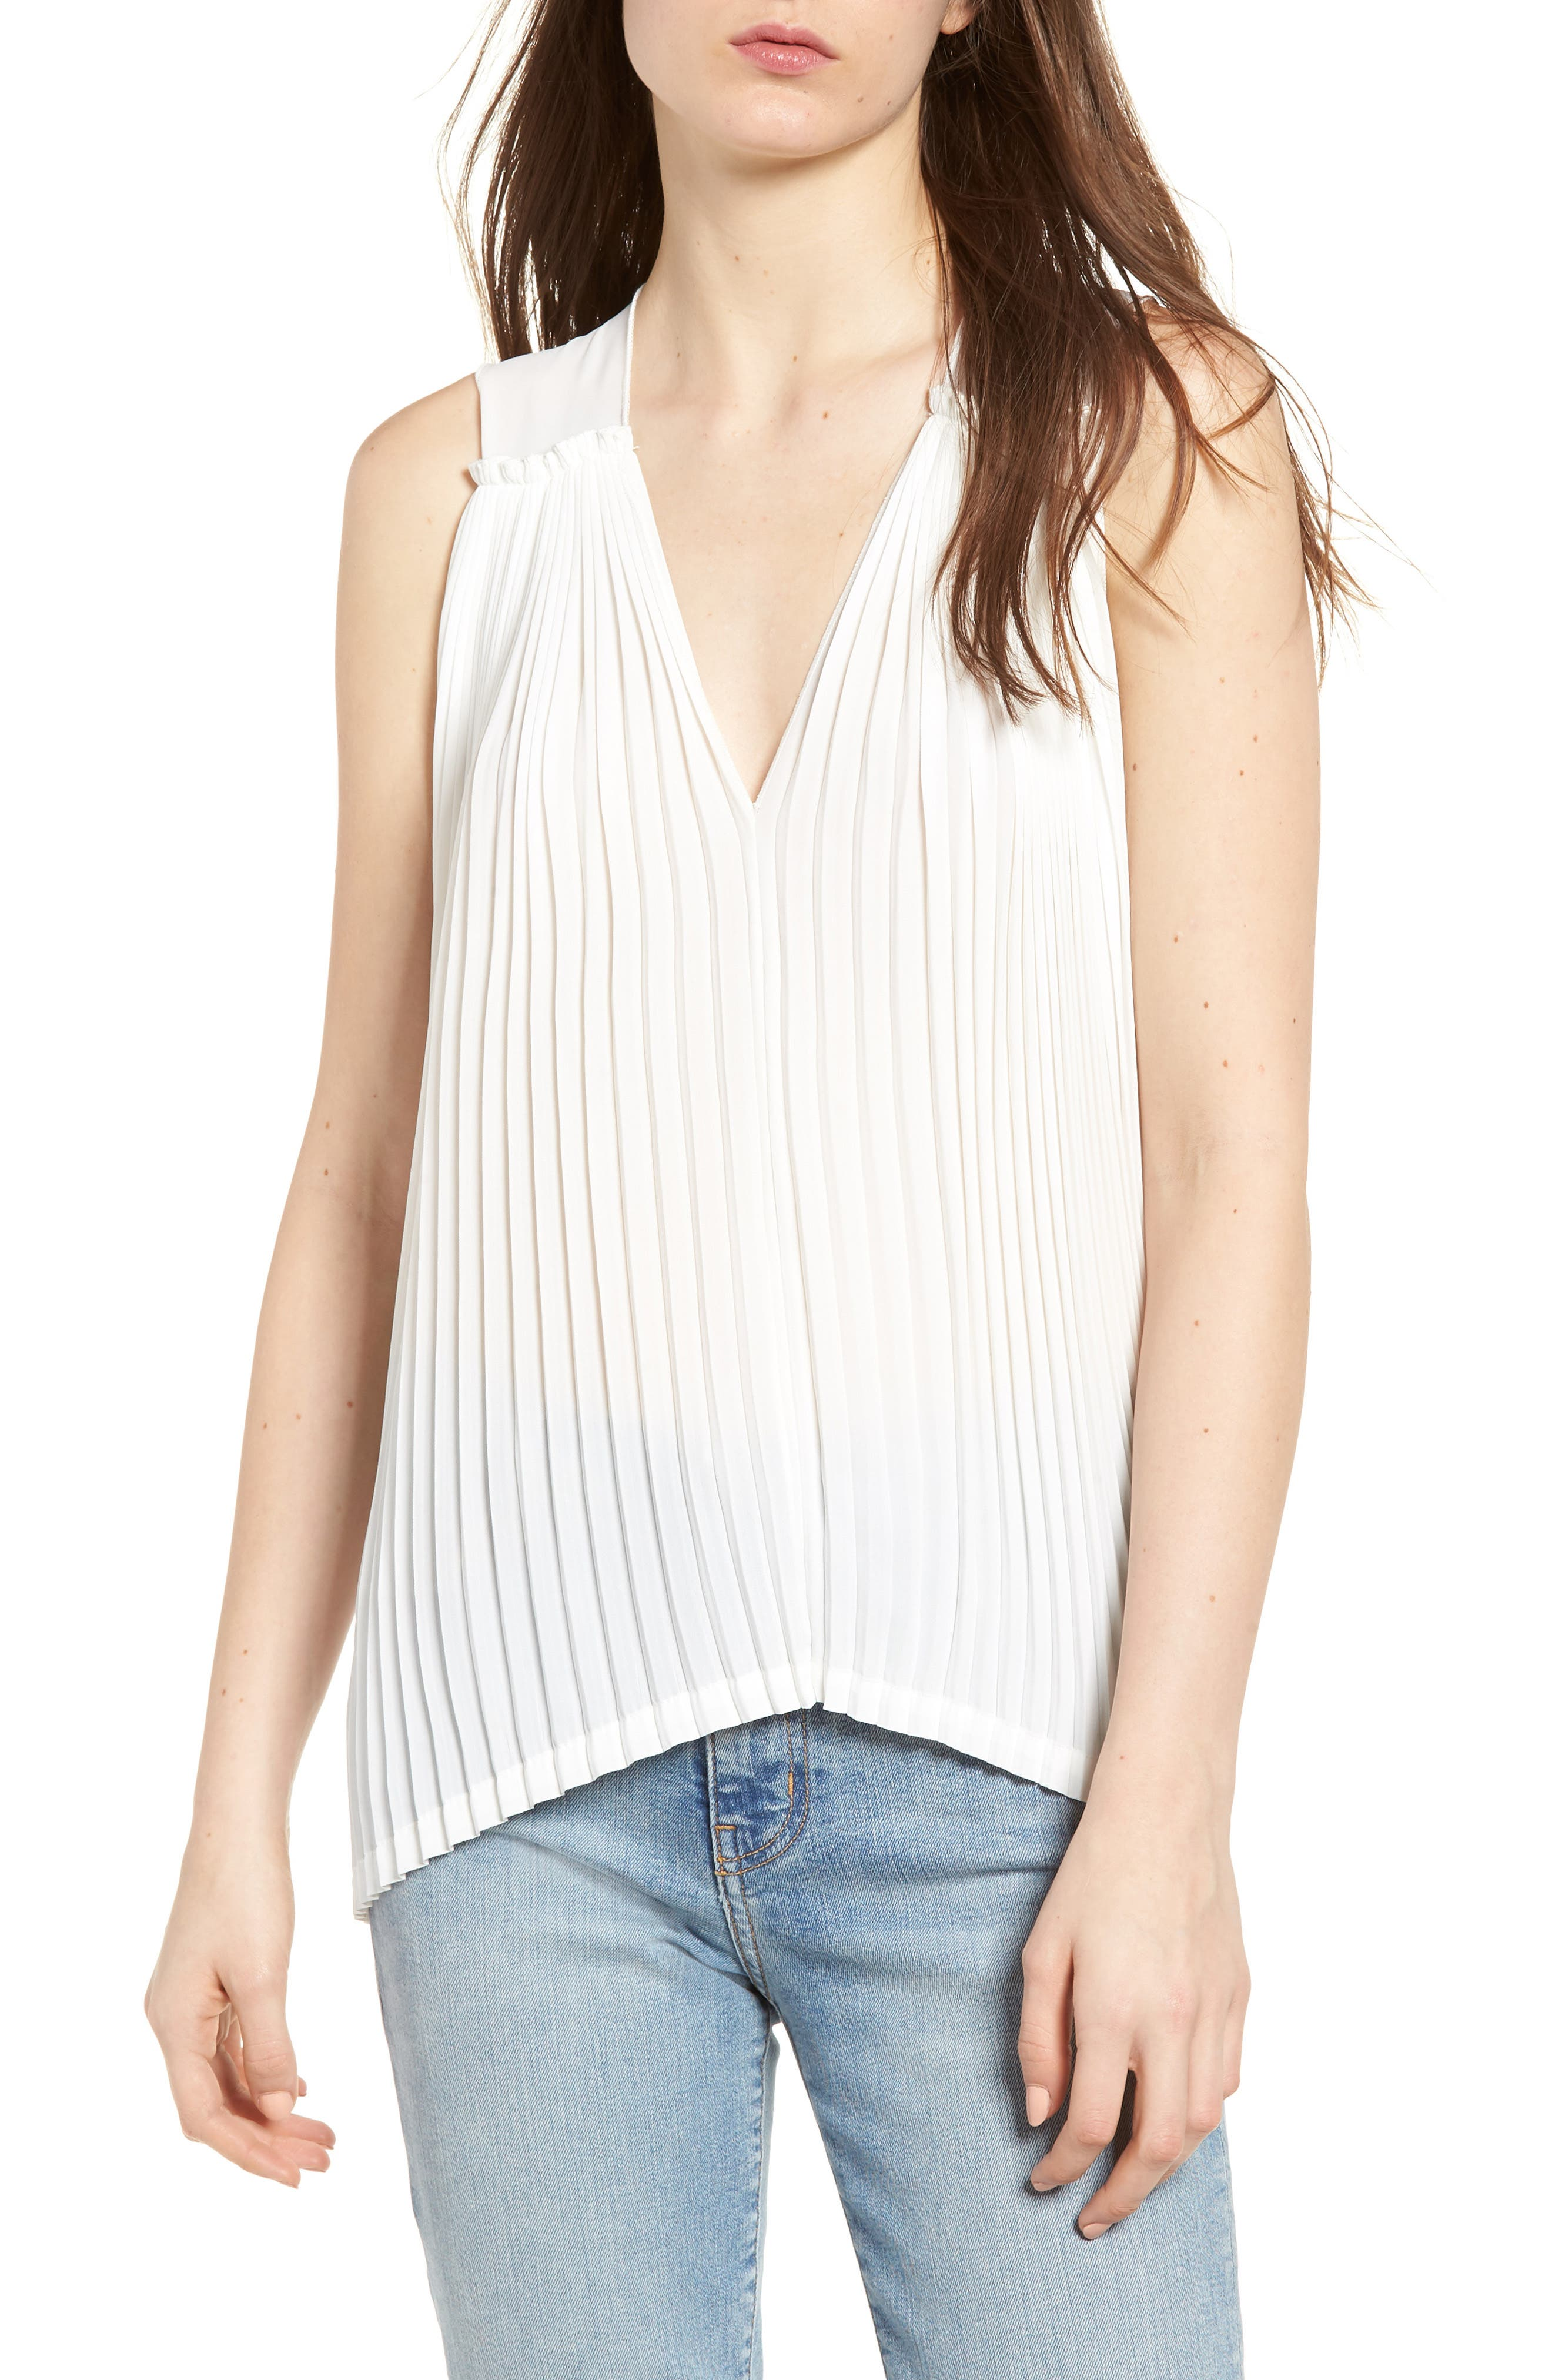 Bishop + Young Pleat Blouse,                         Main,                         color, White